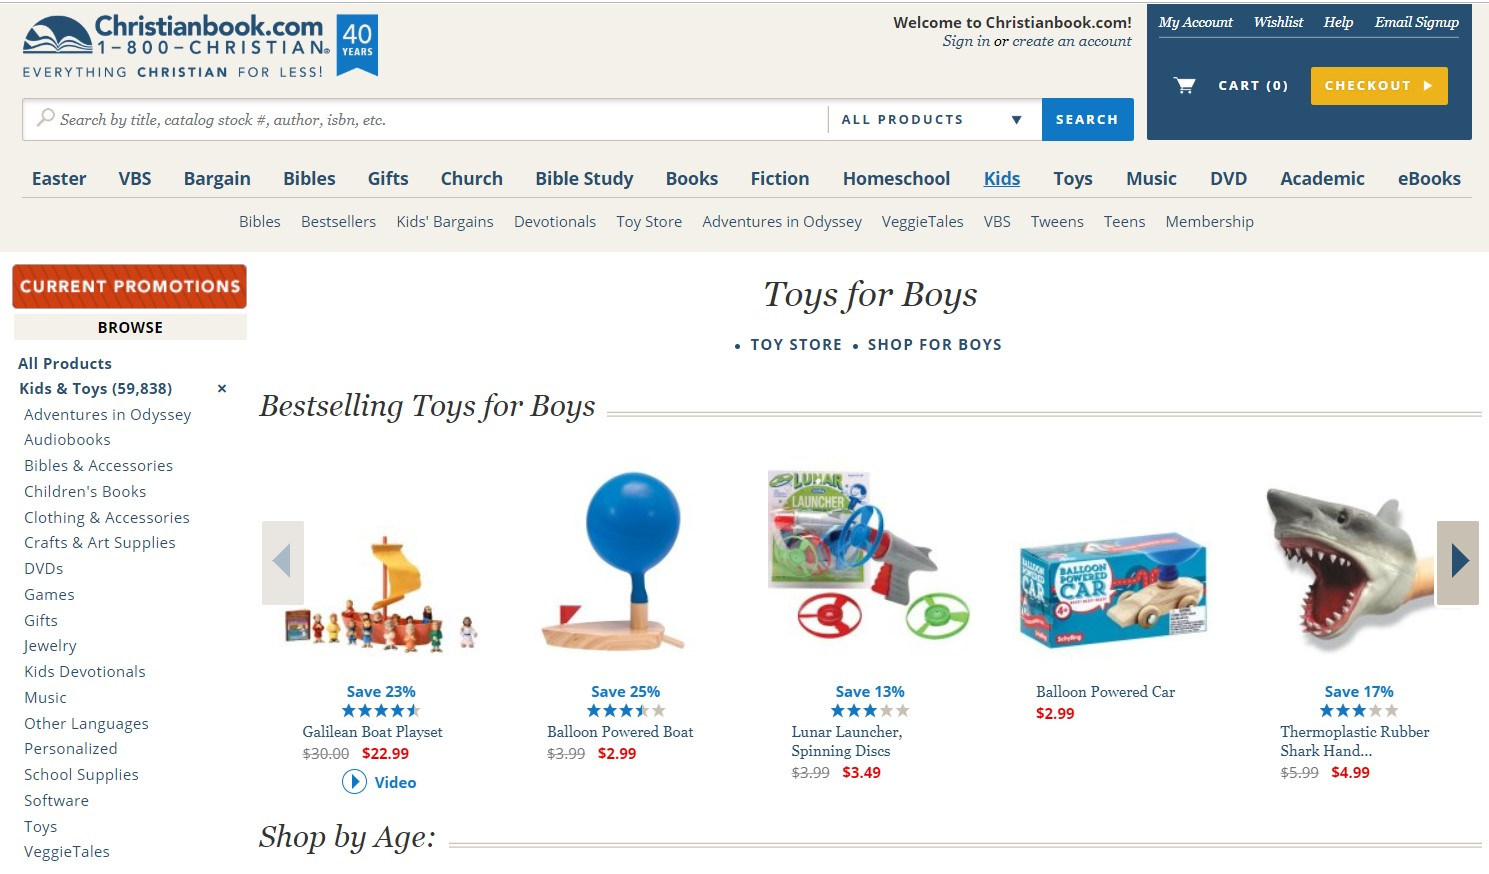 A screenshot of the website Christianbook.com (Toys for Boys)